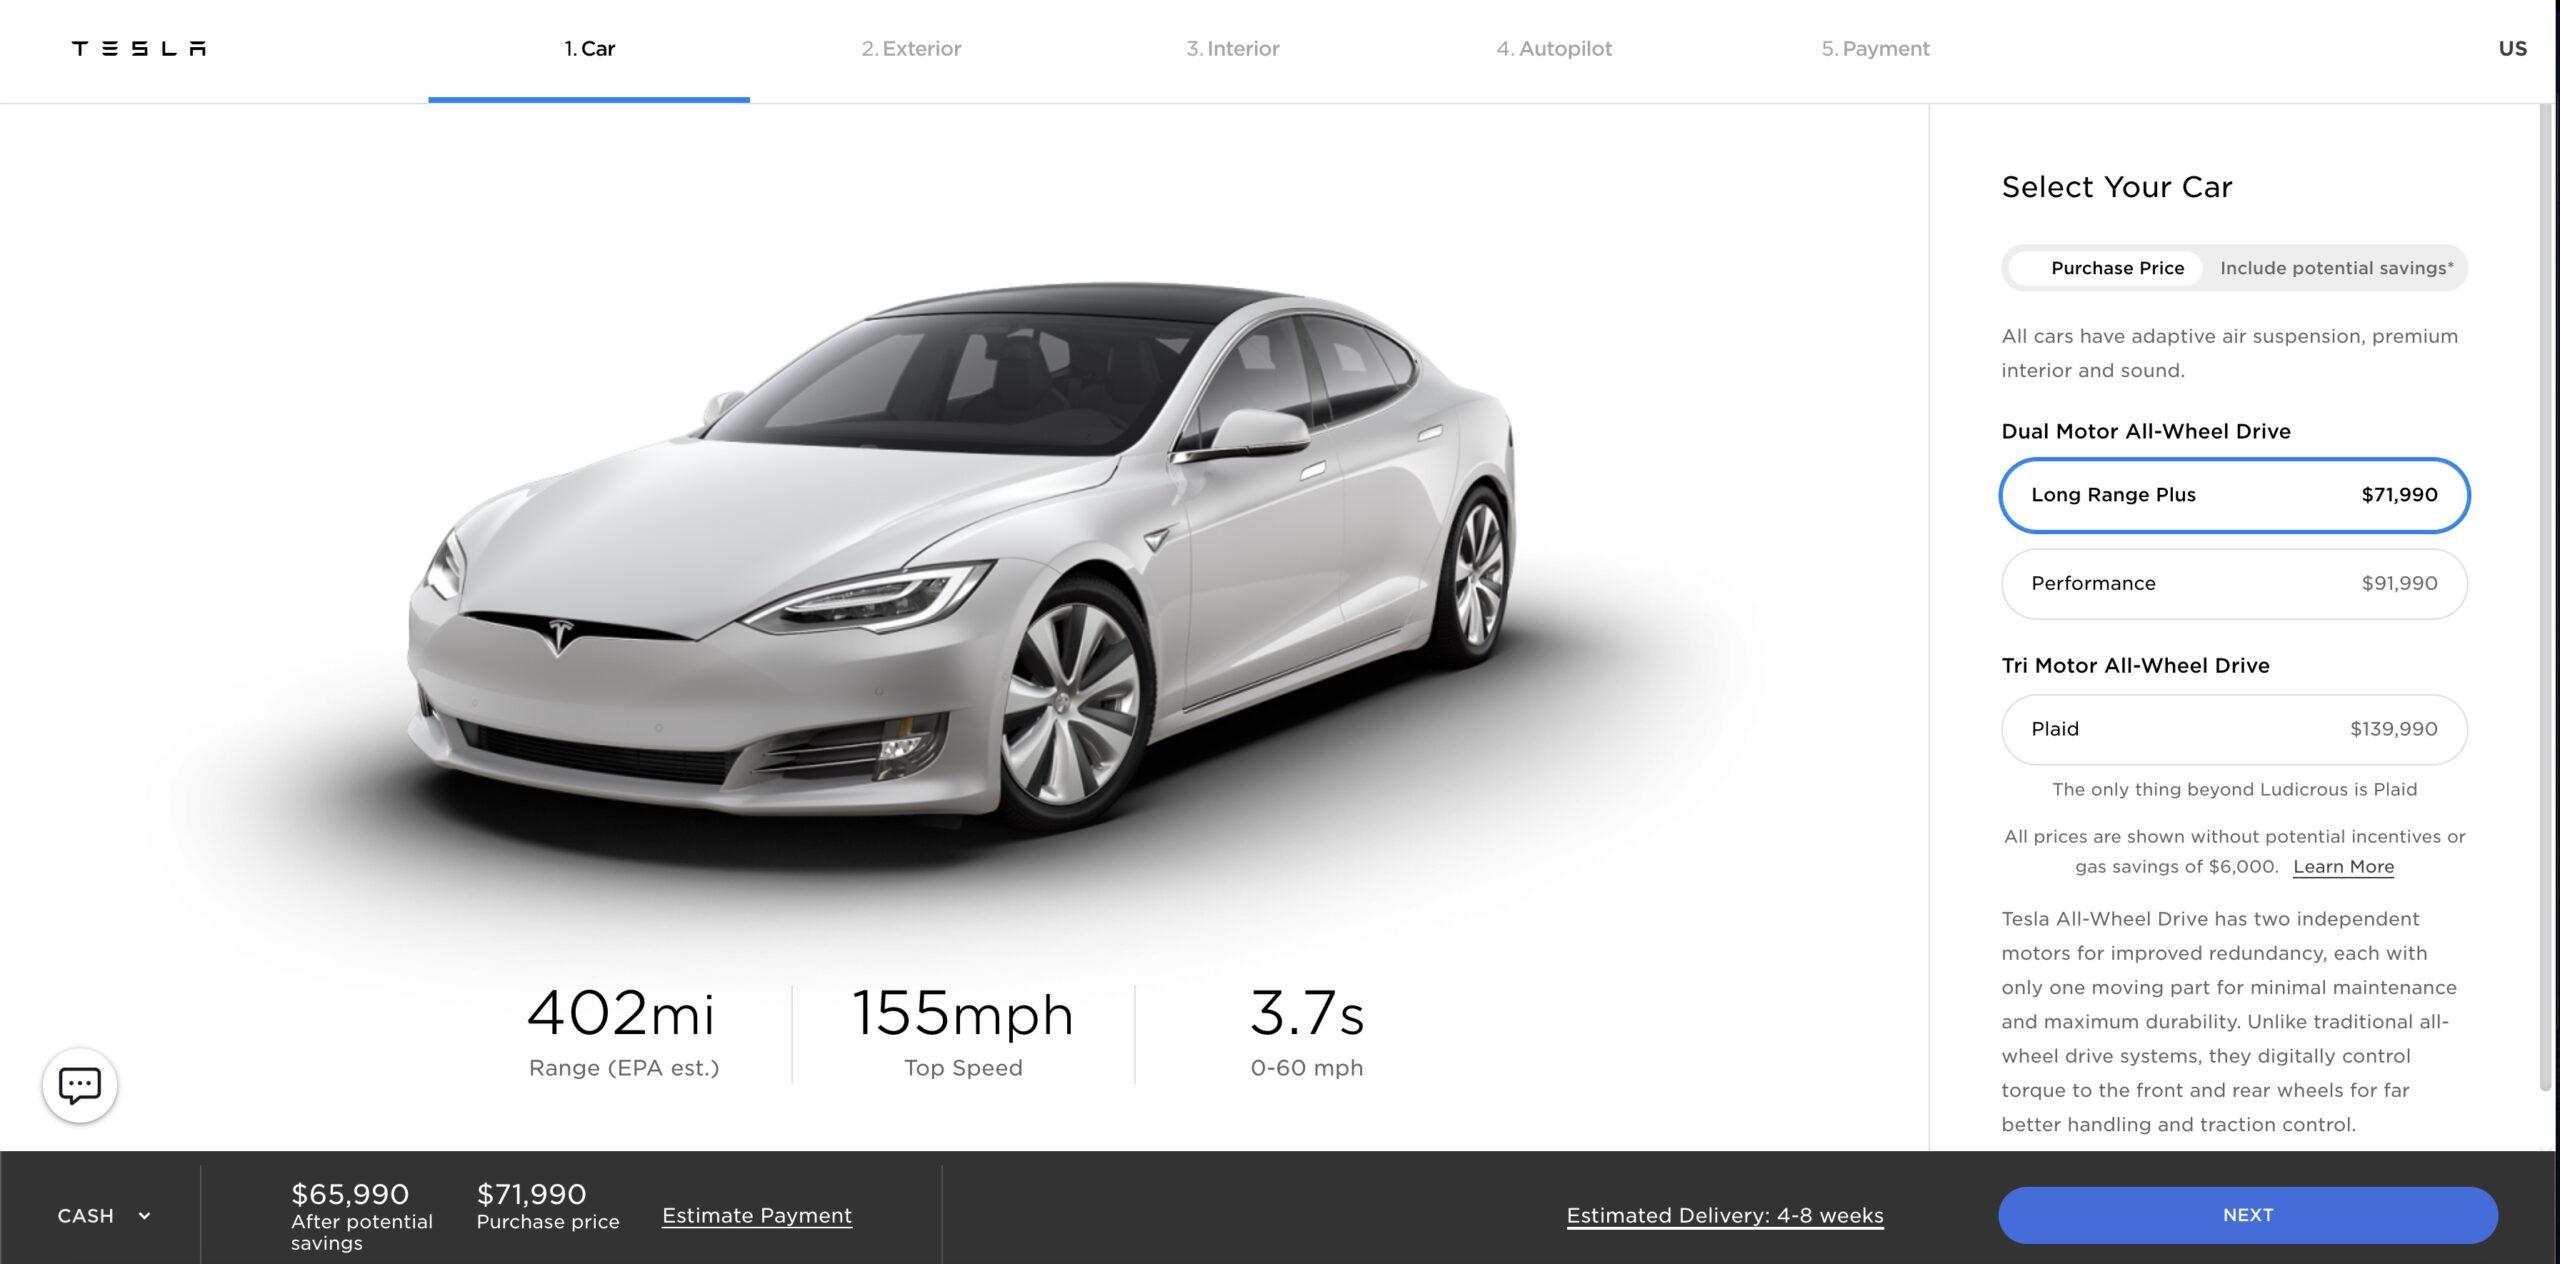 Tesla-Model-S-price-update-to-72000